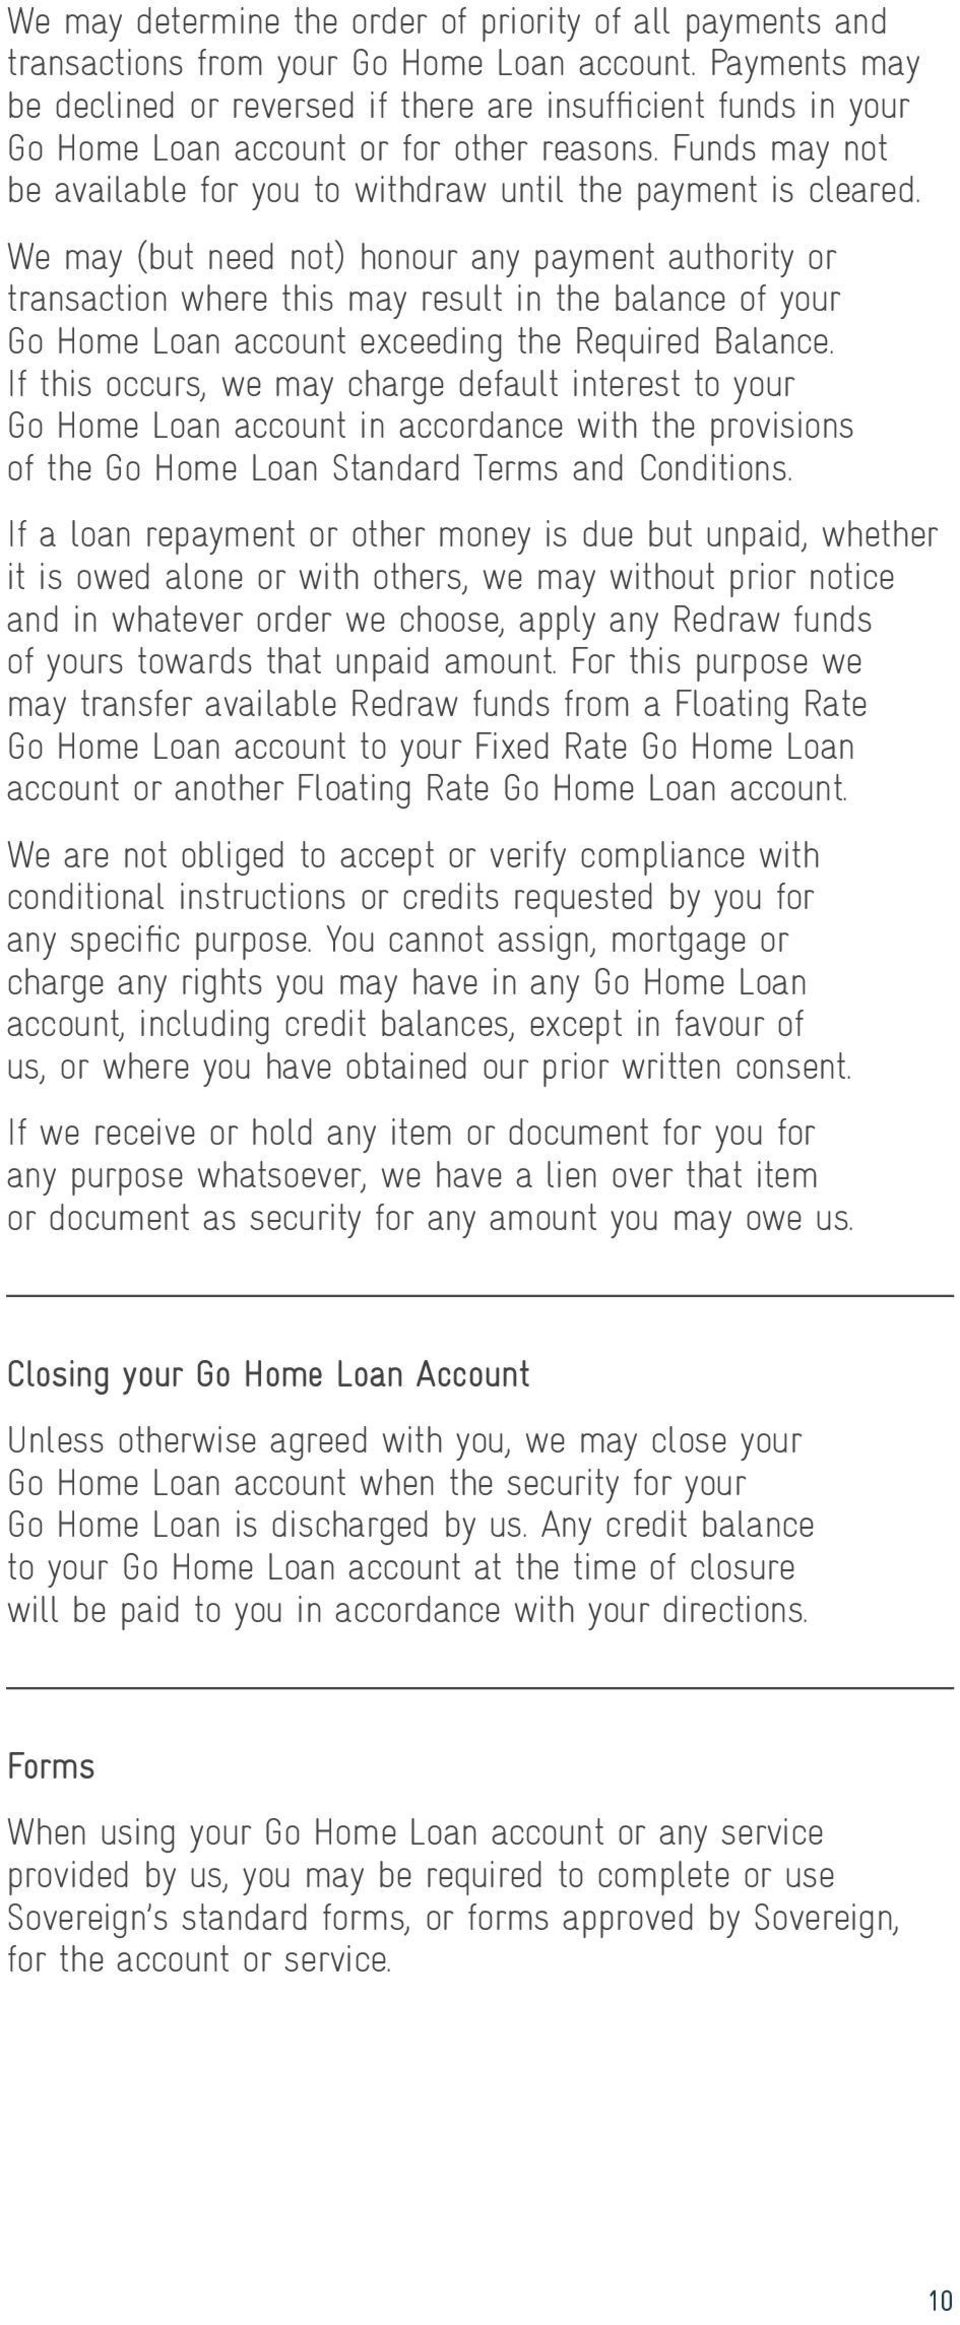 We may (but need not) honour any payment authority or transaction where this may result in the balance of your Go Home Loan account exceeding the Required Balance.